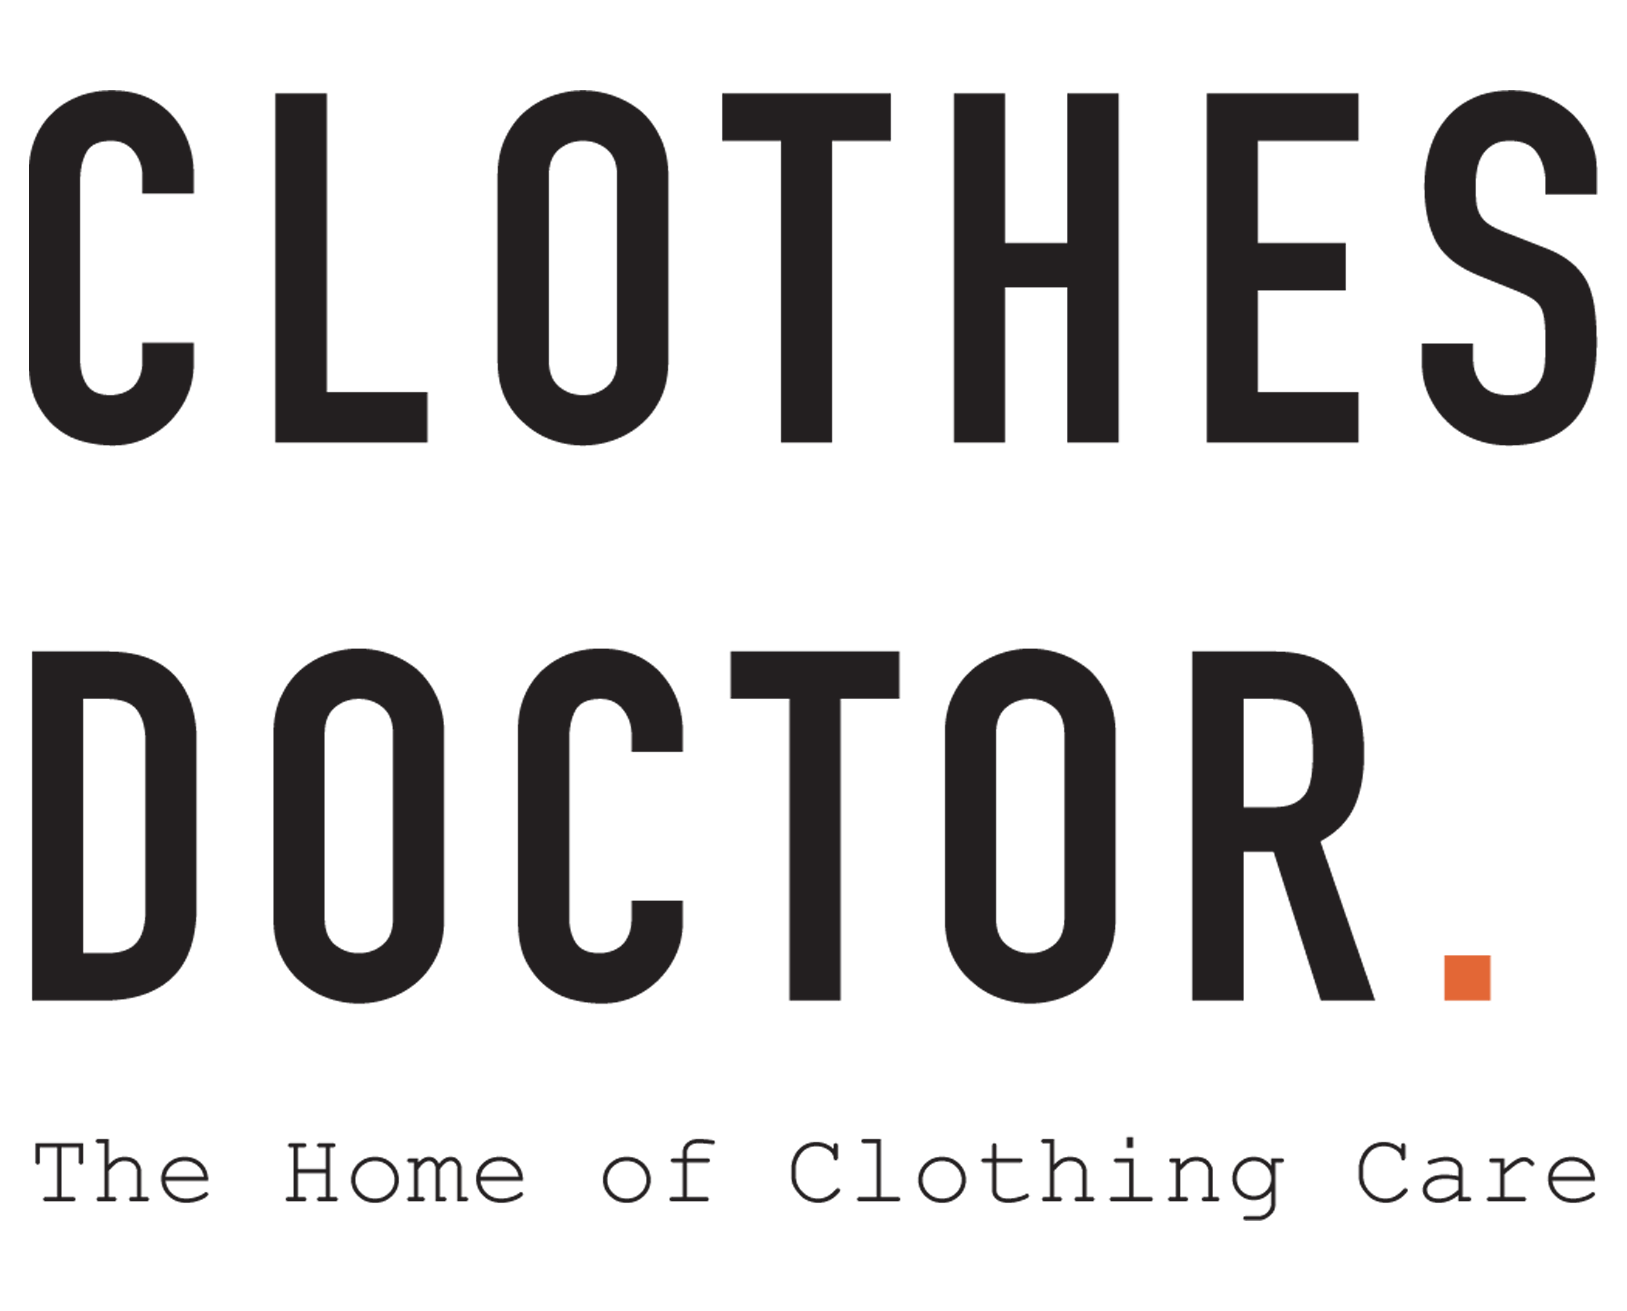 Clothes Doctor Reviews | Read Customer Service Reviews of